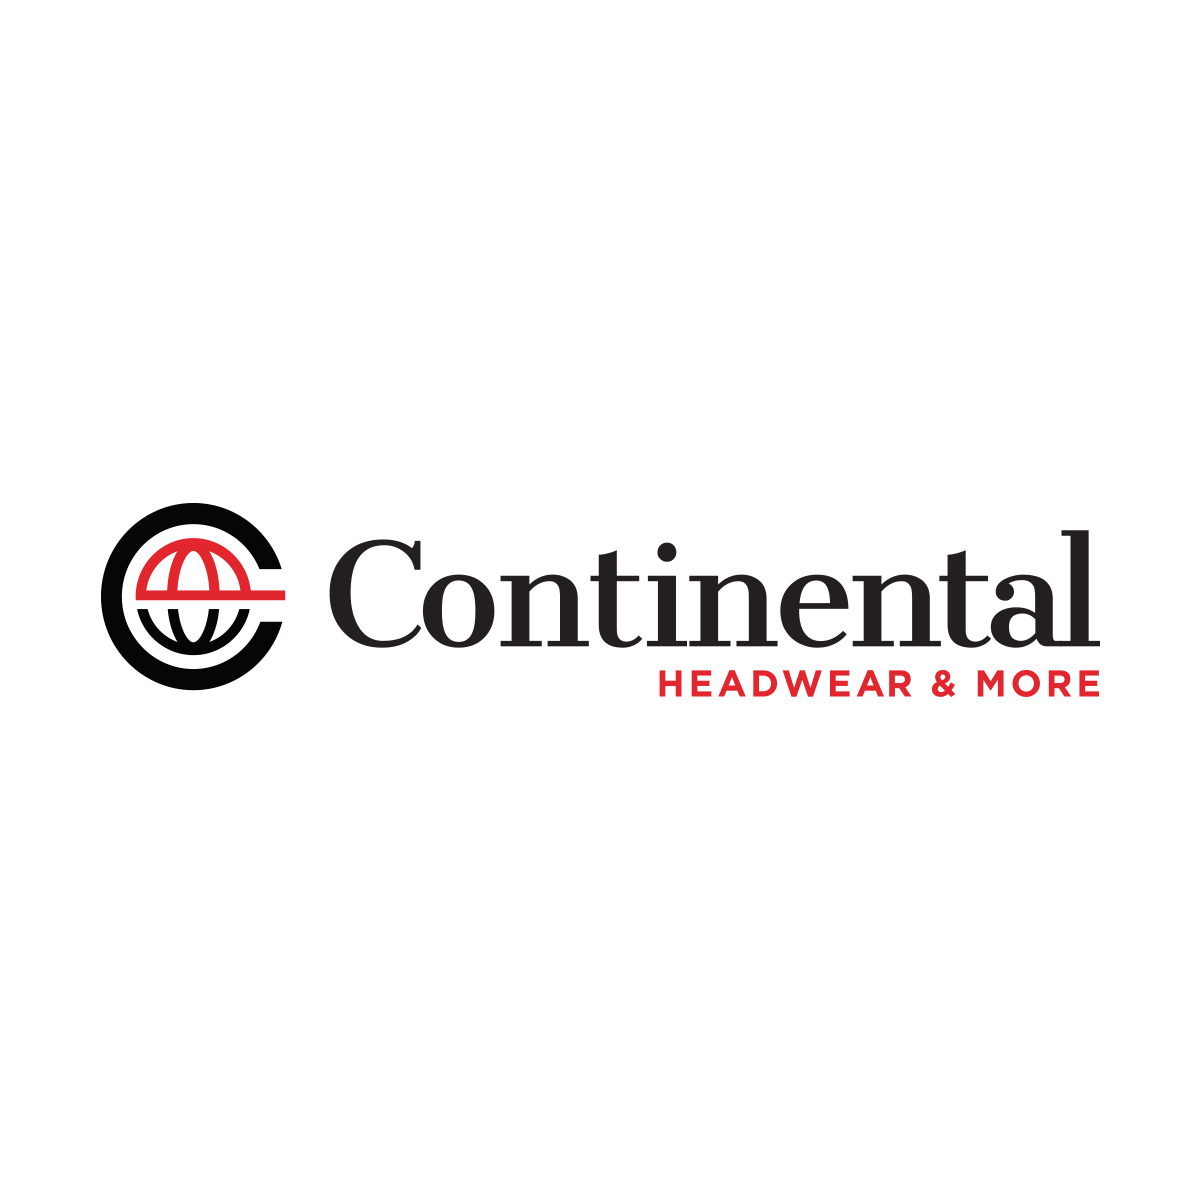 Continental Headwear Announces Their 2017 Online Catalog And Innovative  Marketing Refresh 674c93950b8